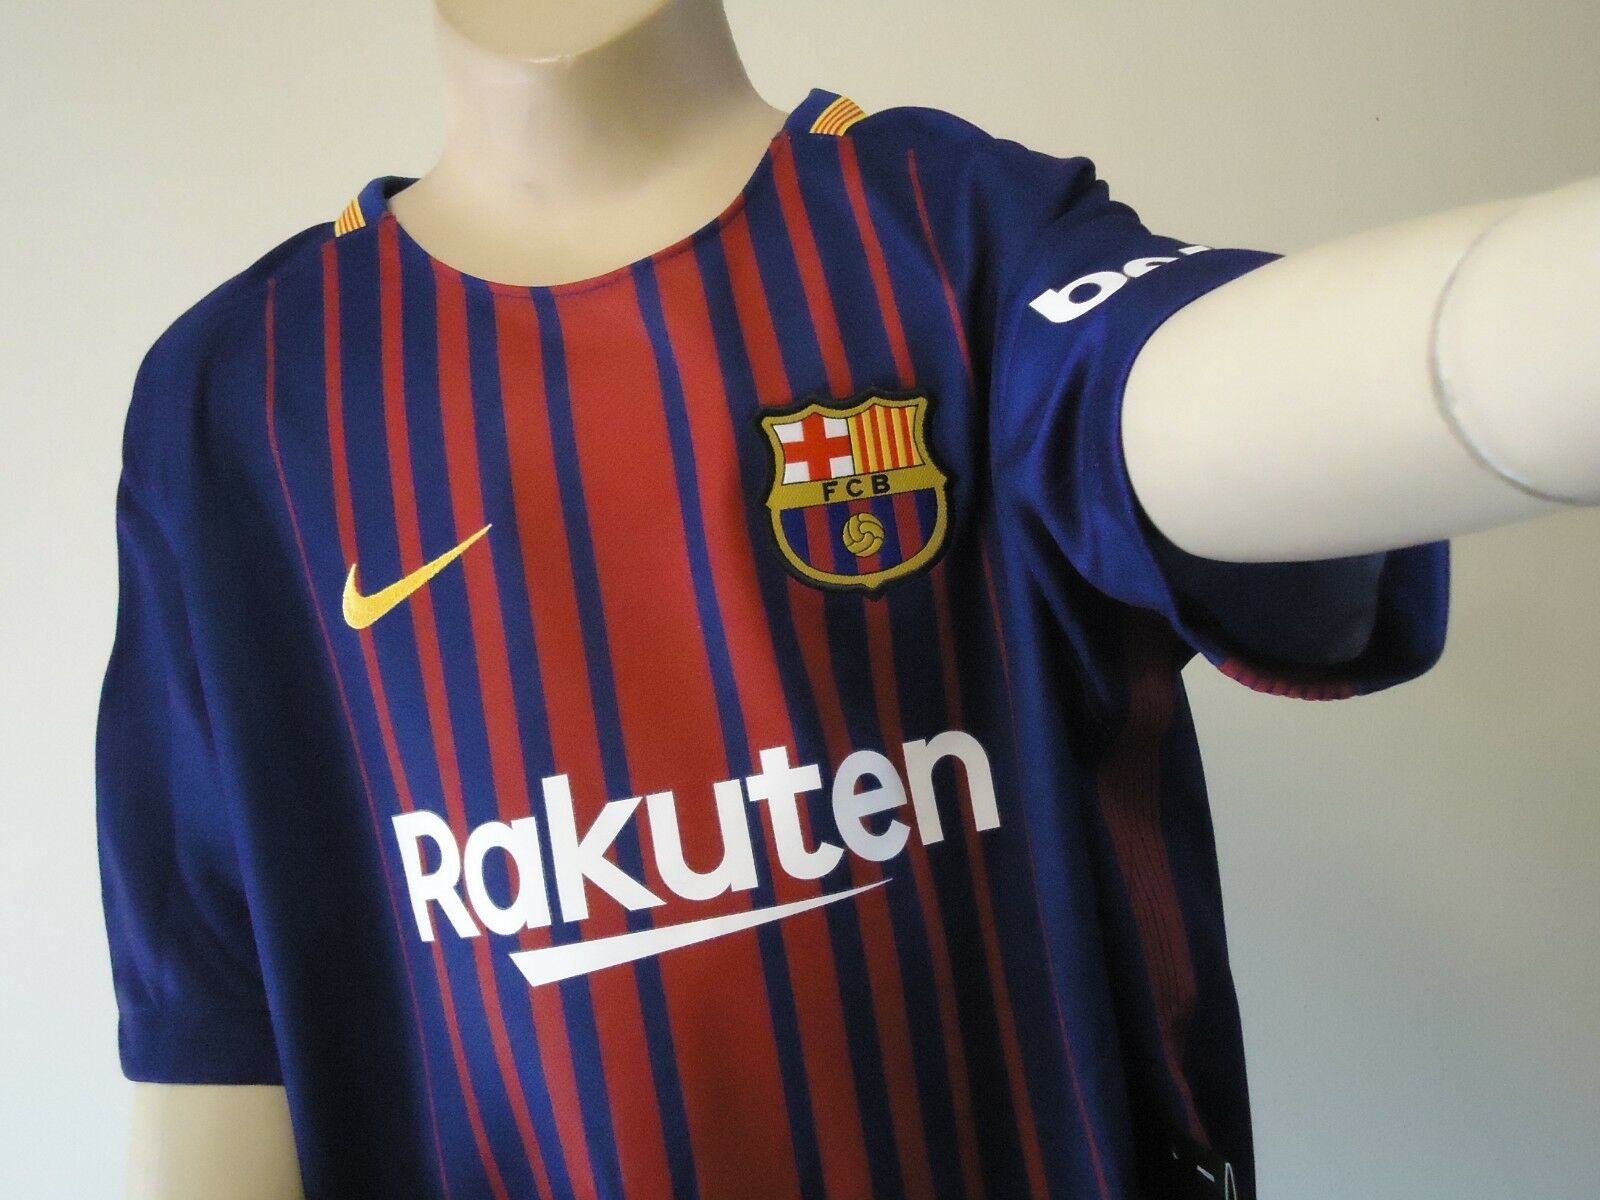 BARCELONA OFFICIAL HOME JERSEY 17 18 YOUTH LARGE NEW